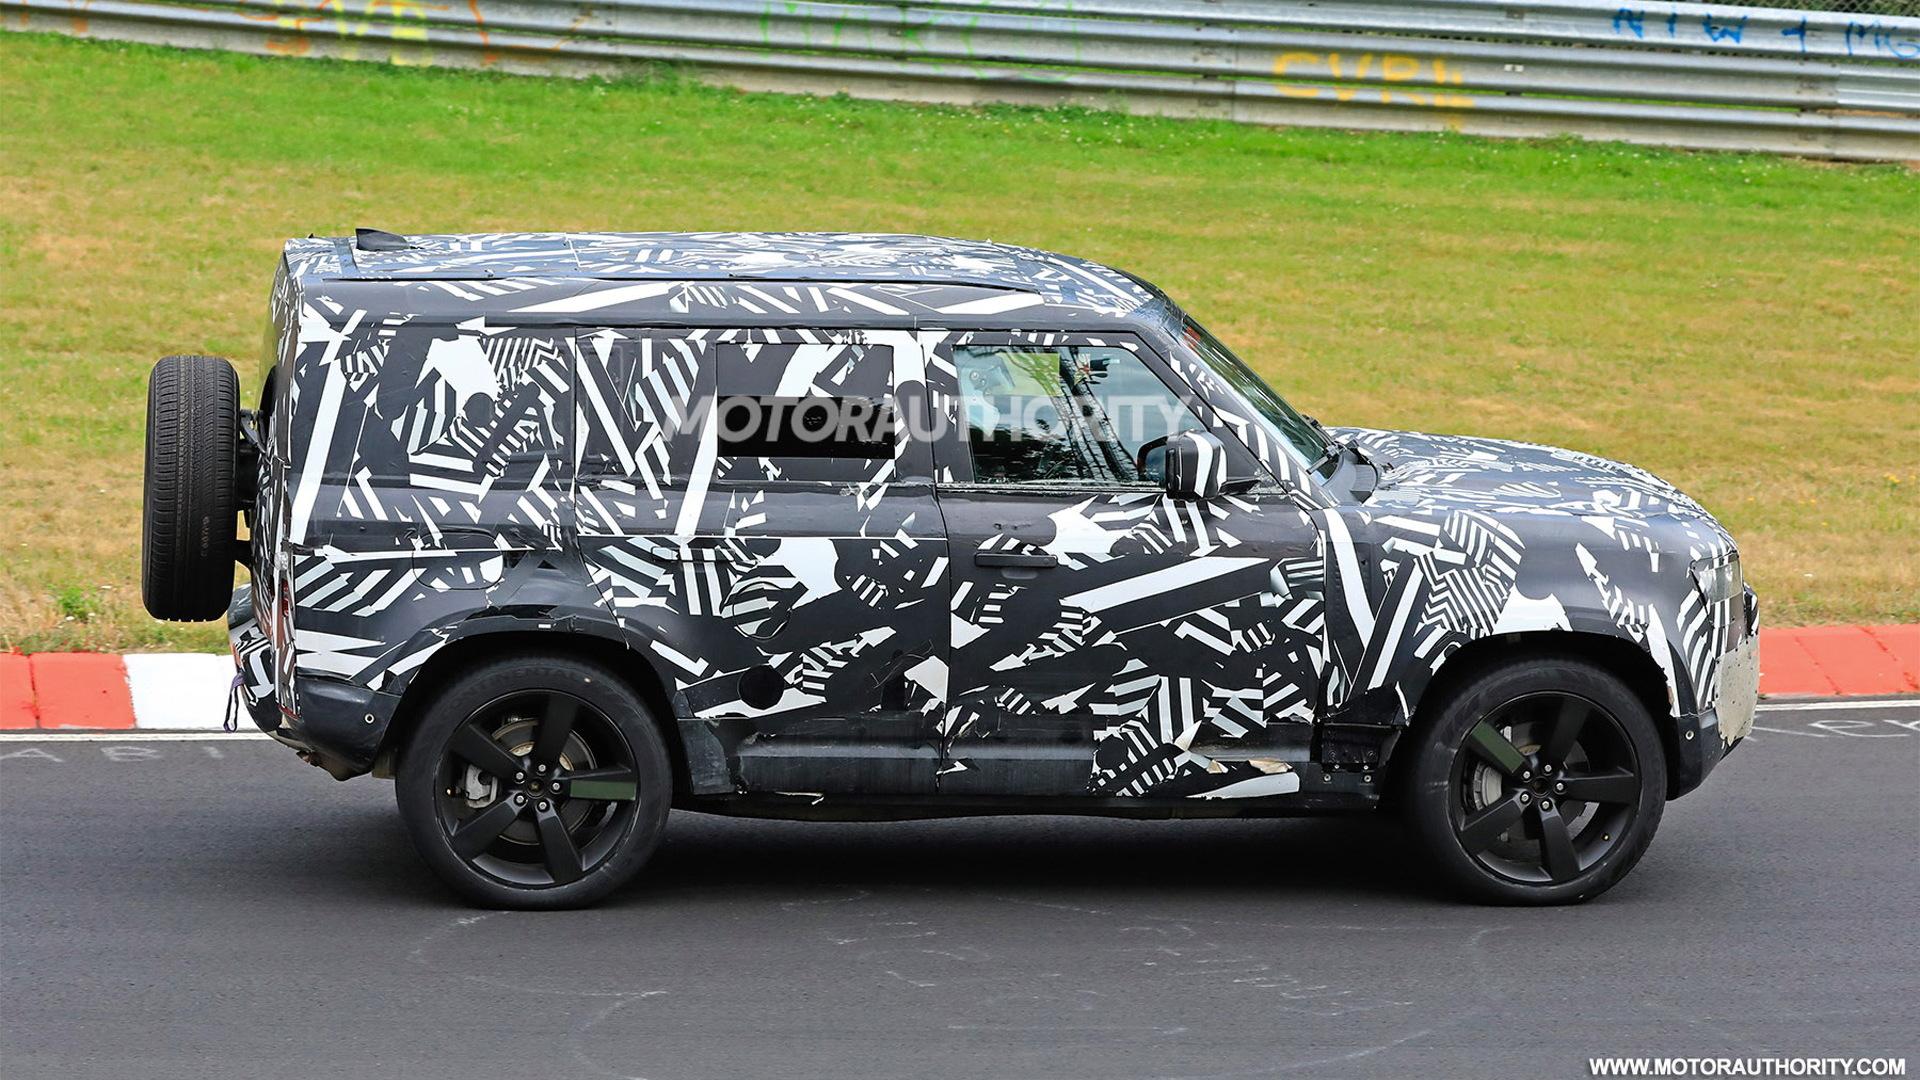 2020 Land Rover Defender: News, Design, Release, Price >> 2020 Land Rover Defender Spy Shots And Video